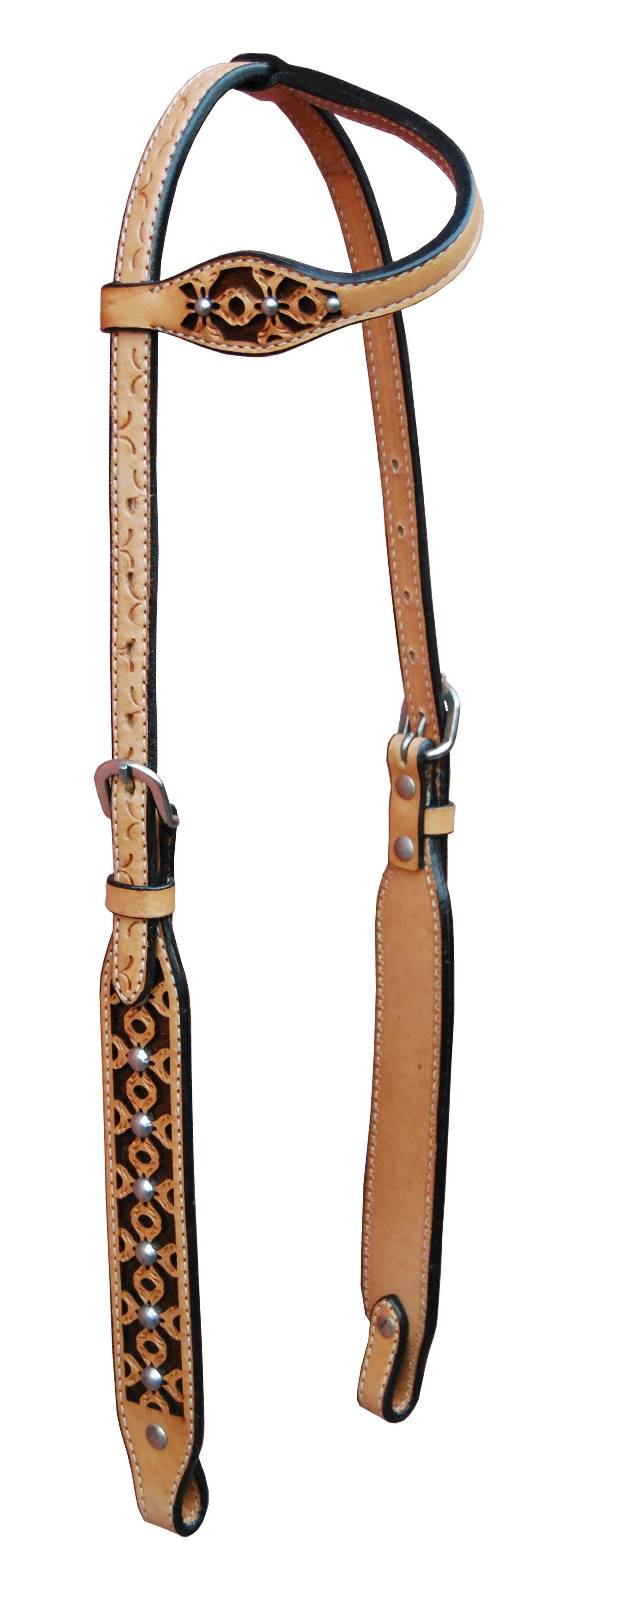 Turn-Two One Ear Headstall - Ponderosa